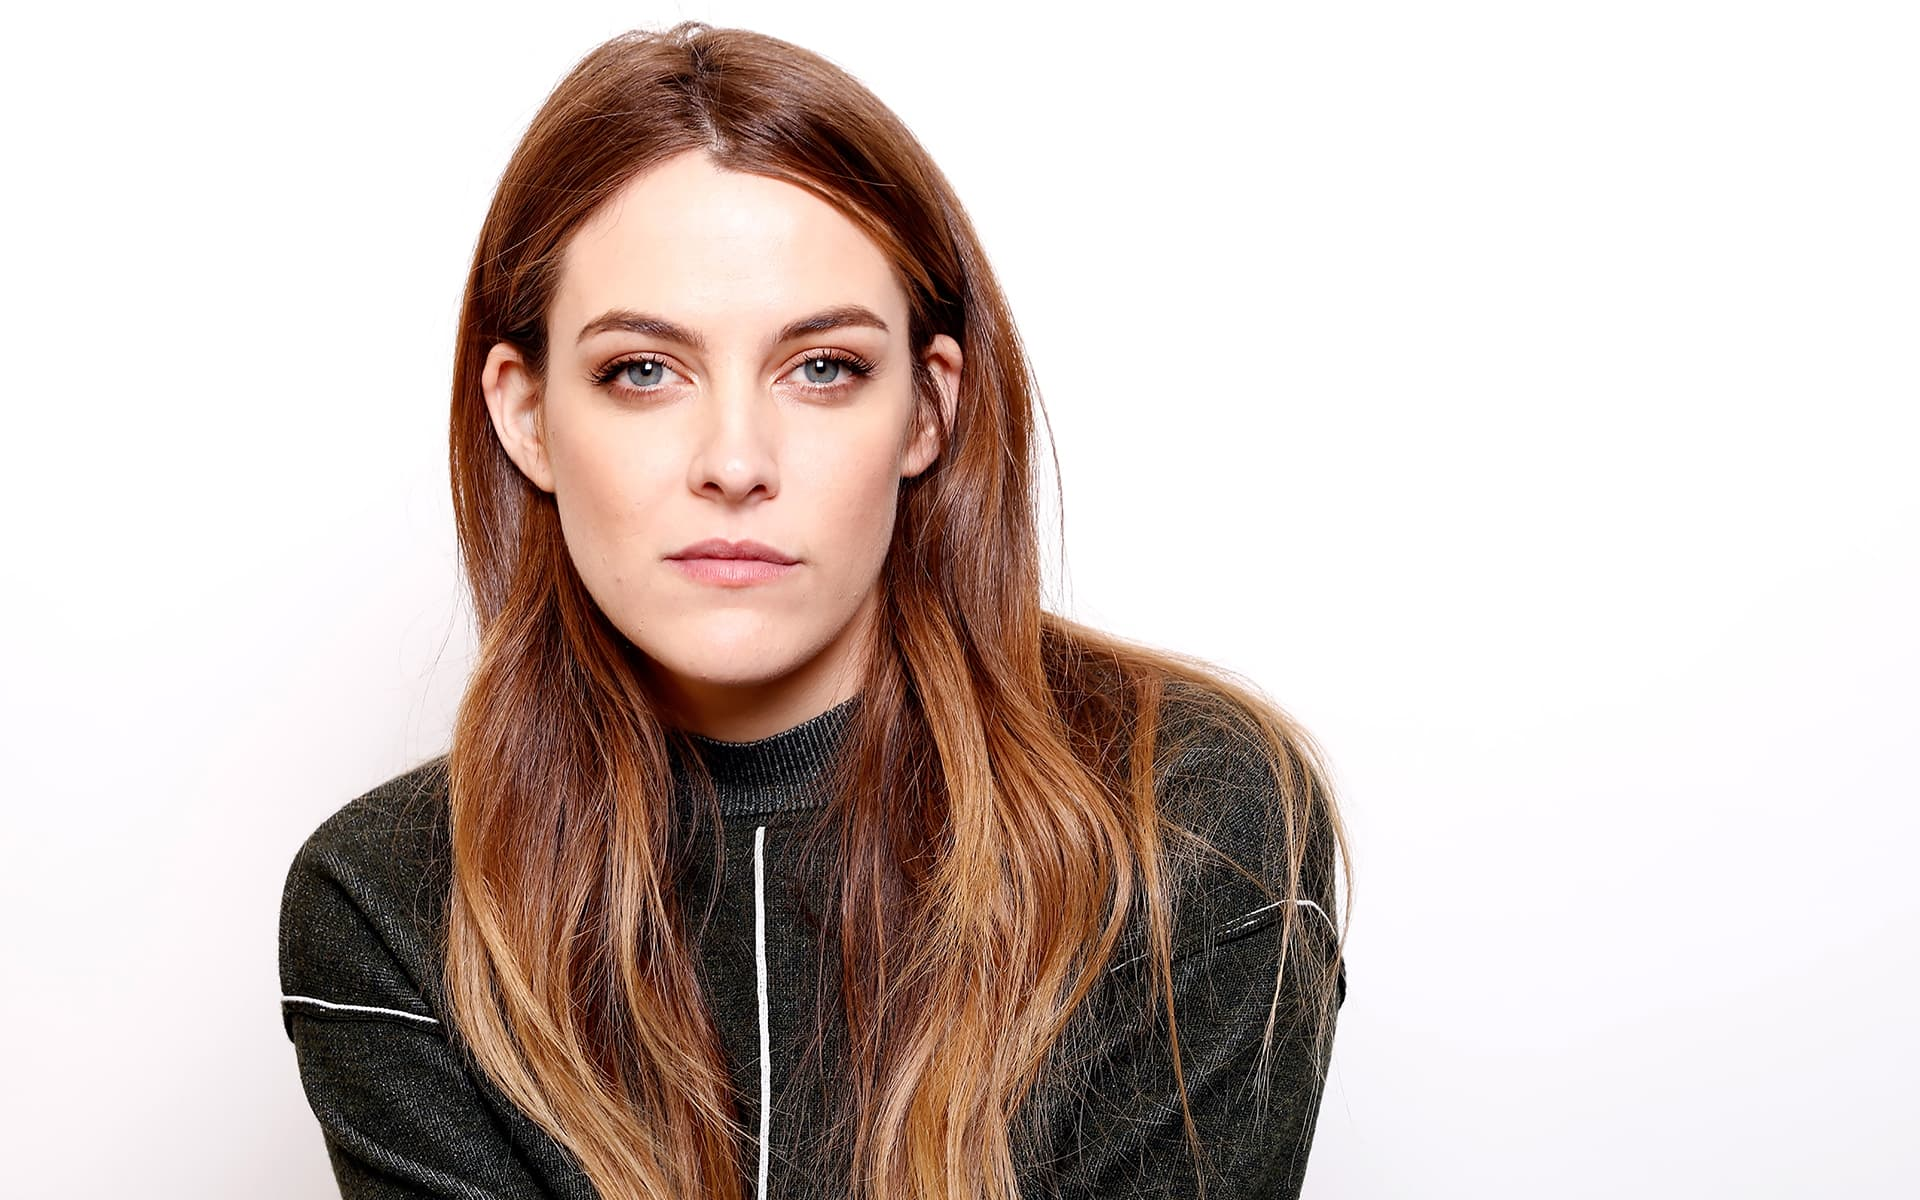 riley keough celebrity wallpaper 55779